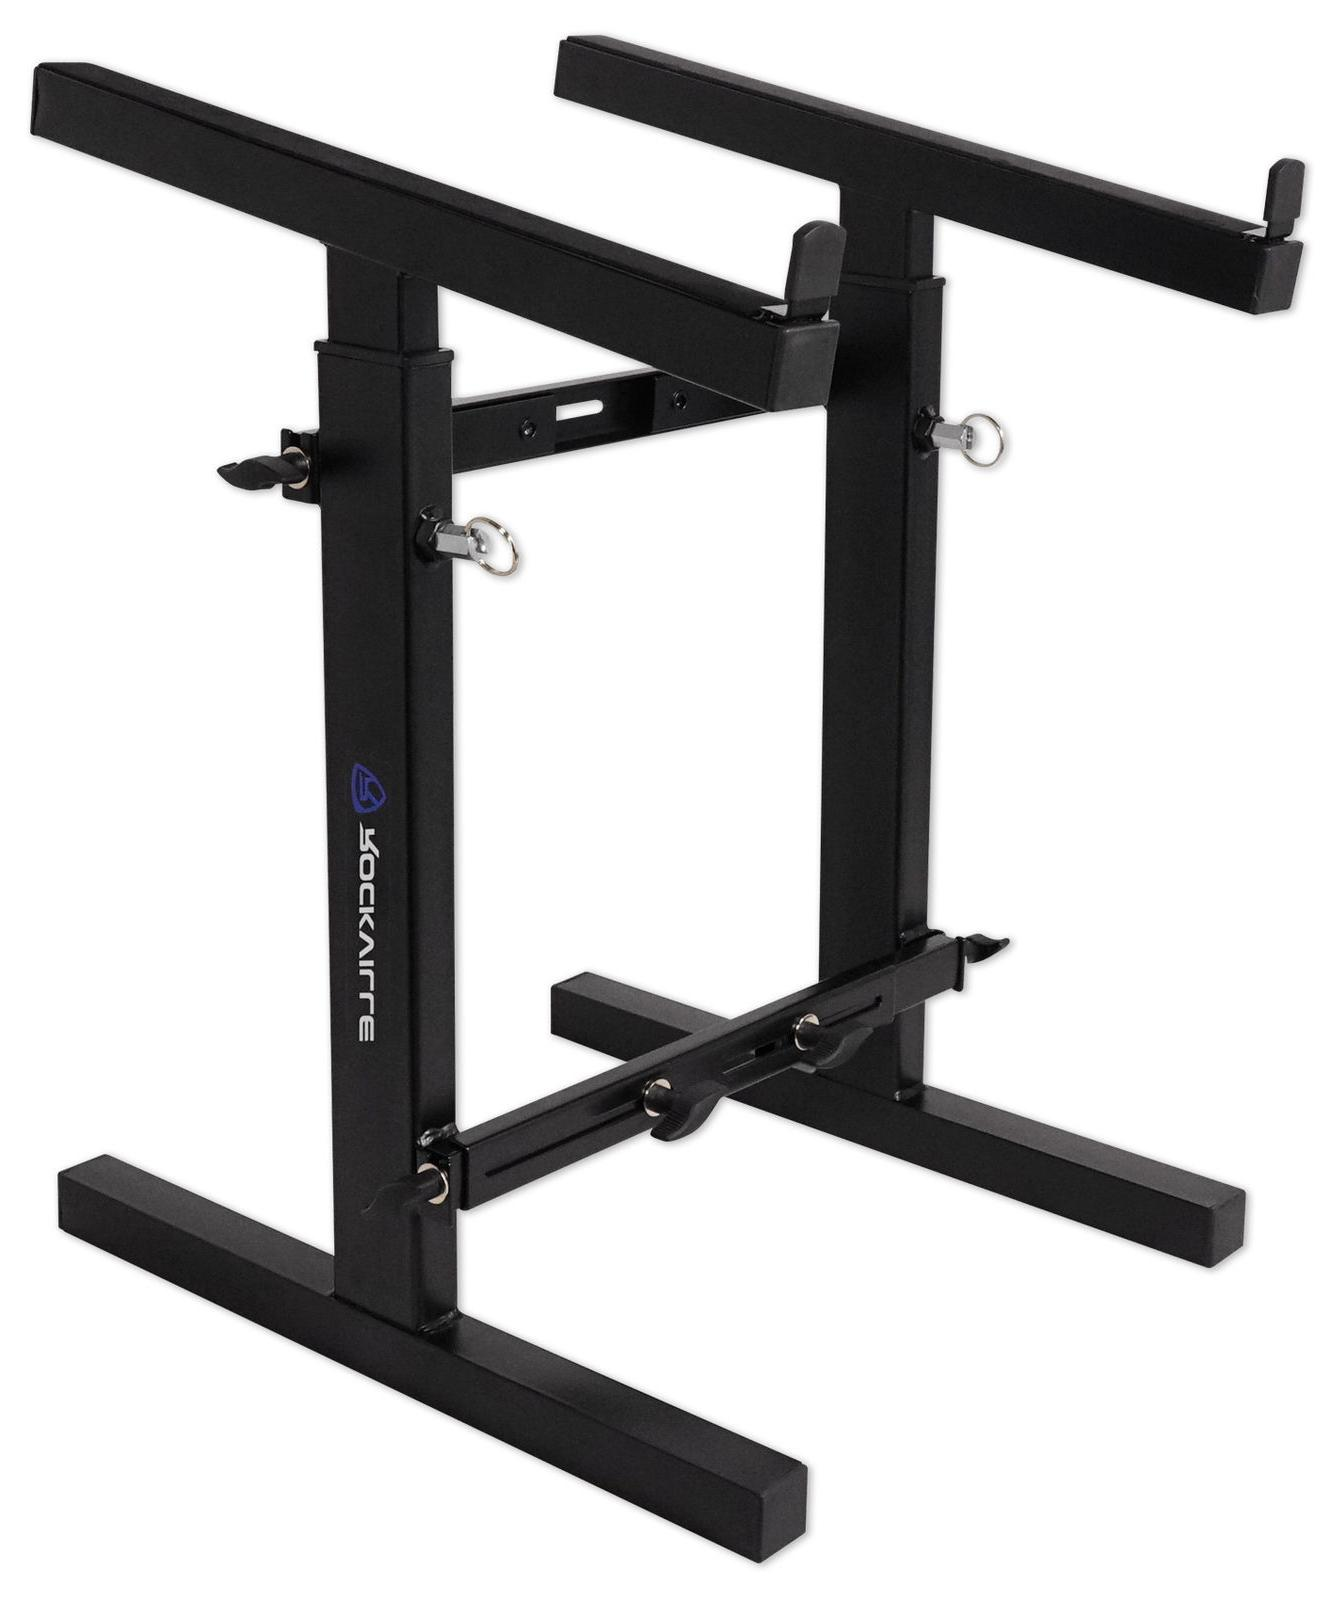 Rockville RXS20 Stand Adjustable Height and